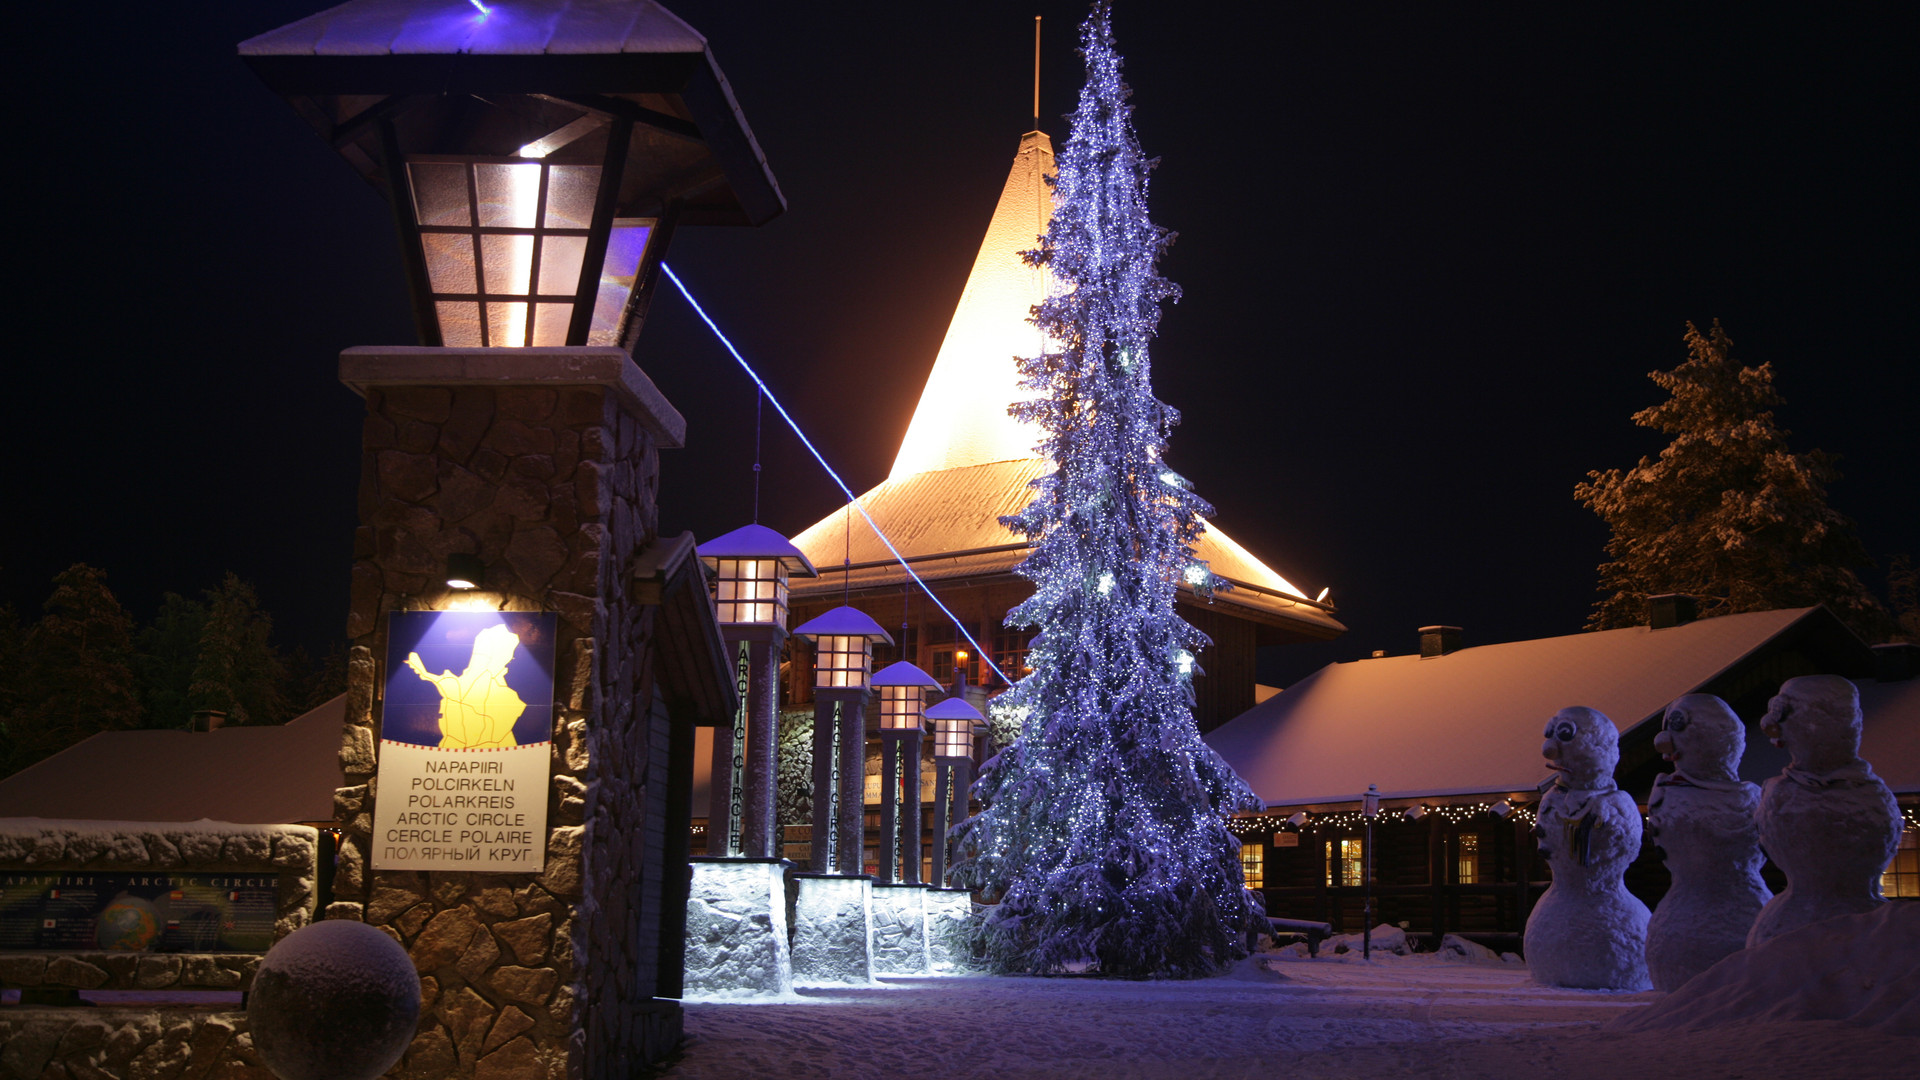 Arctic Circle at Santa Village